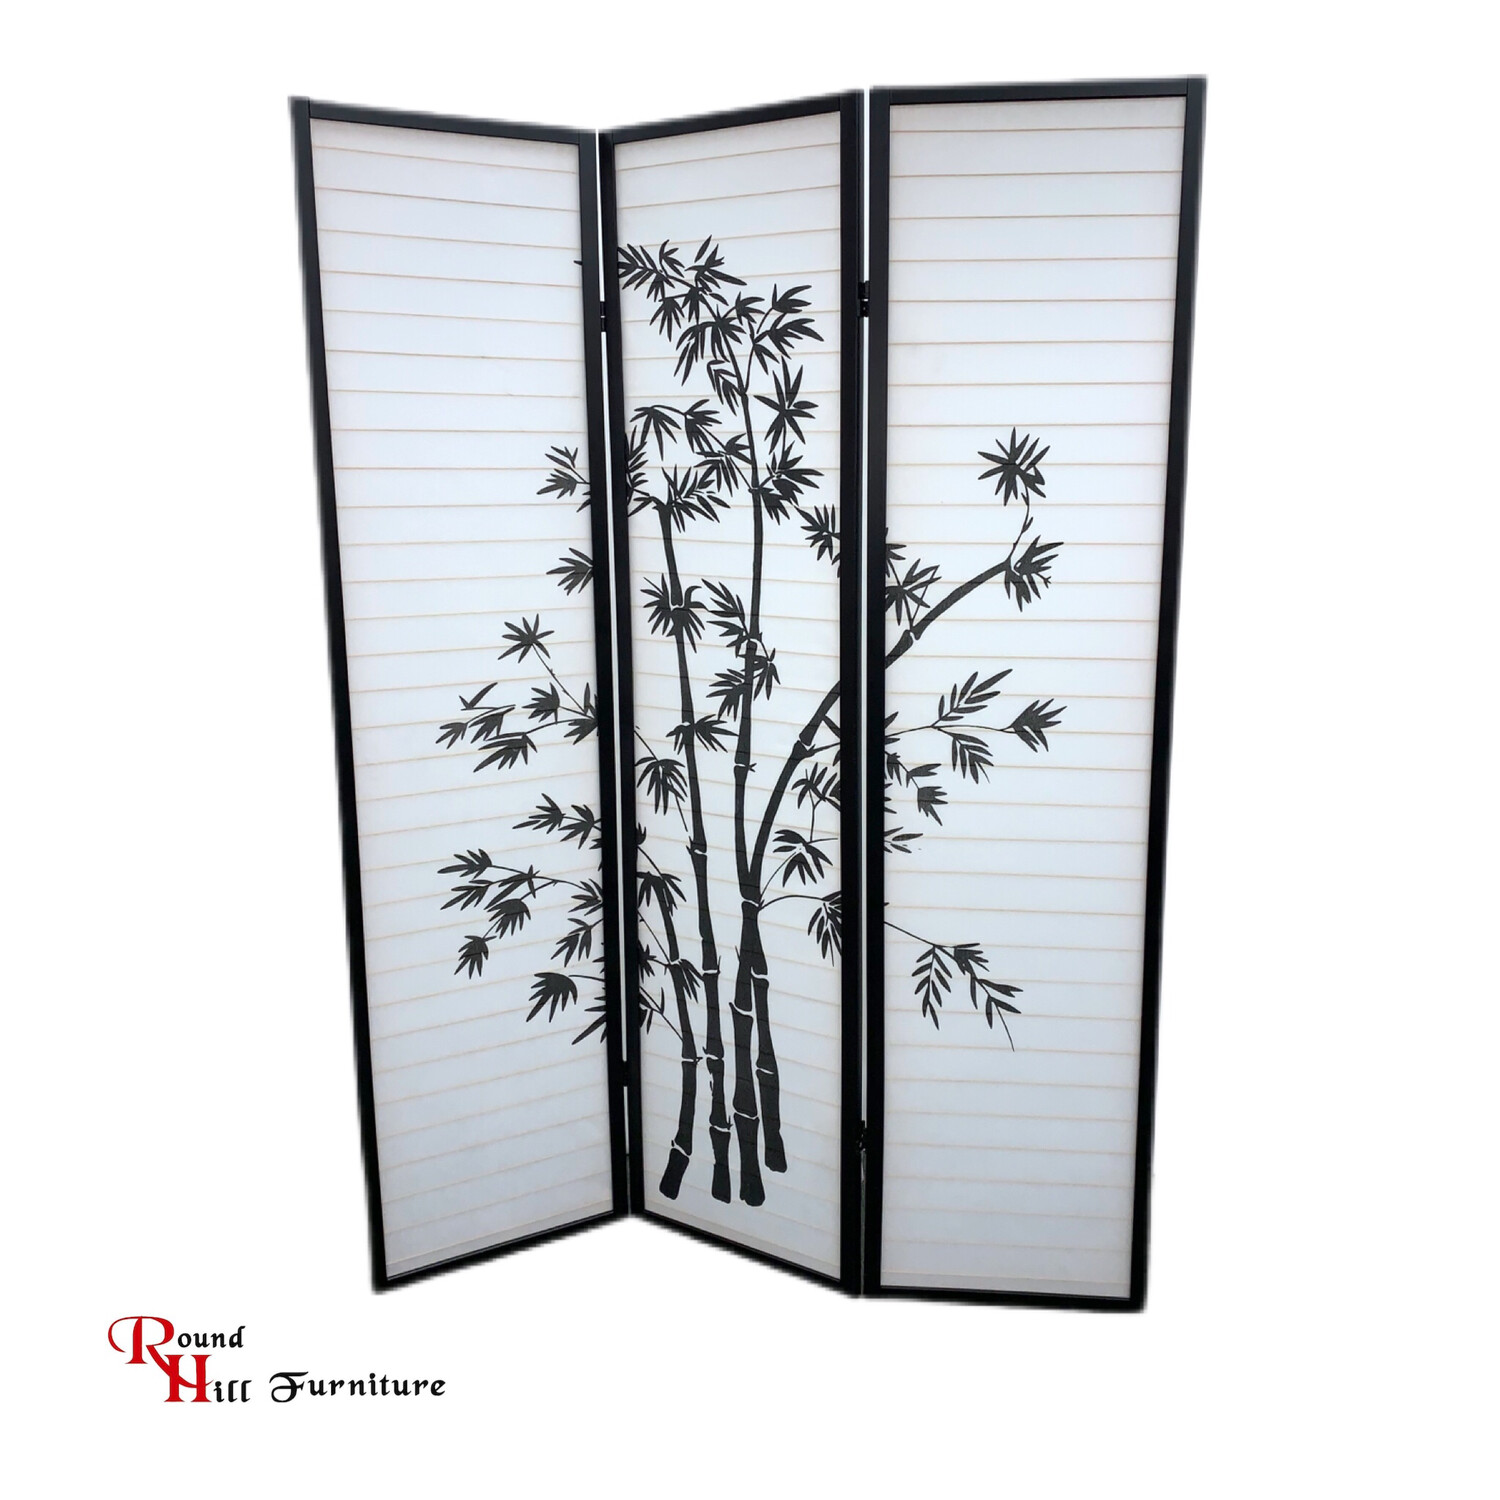 Roundhill Furniture 3-Panel Asian  Shoji Room Divider Screen